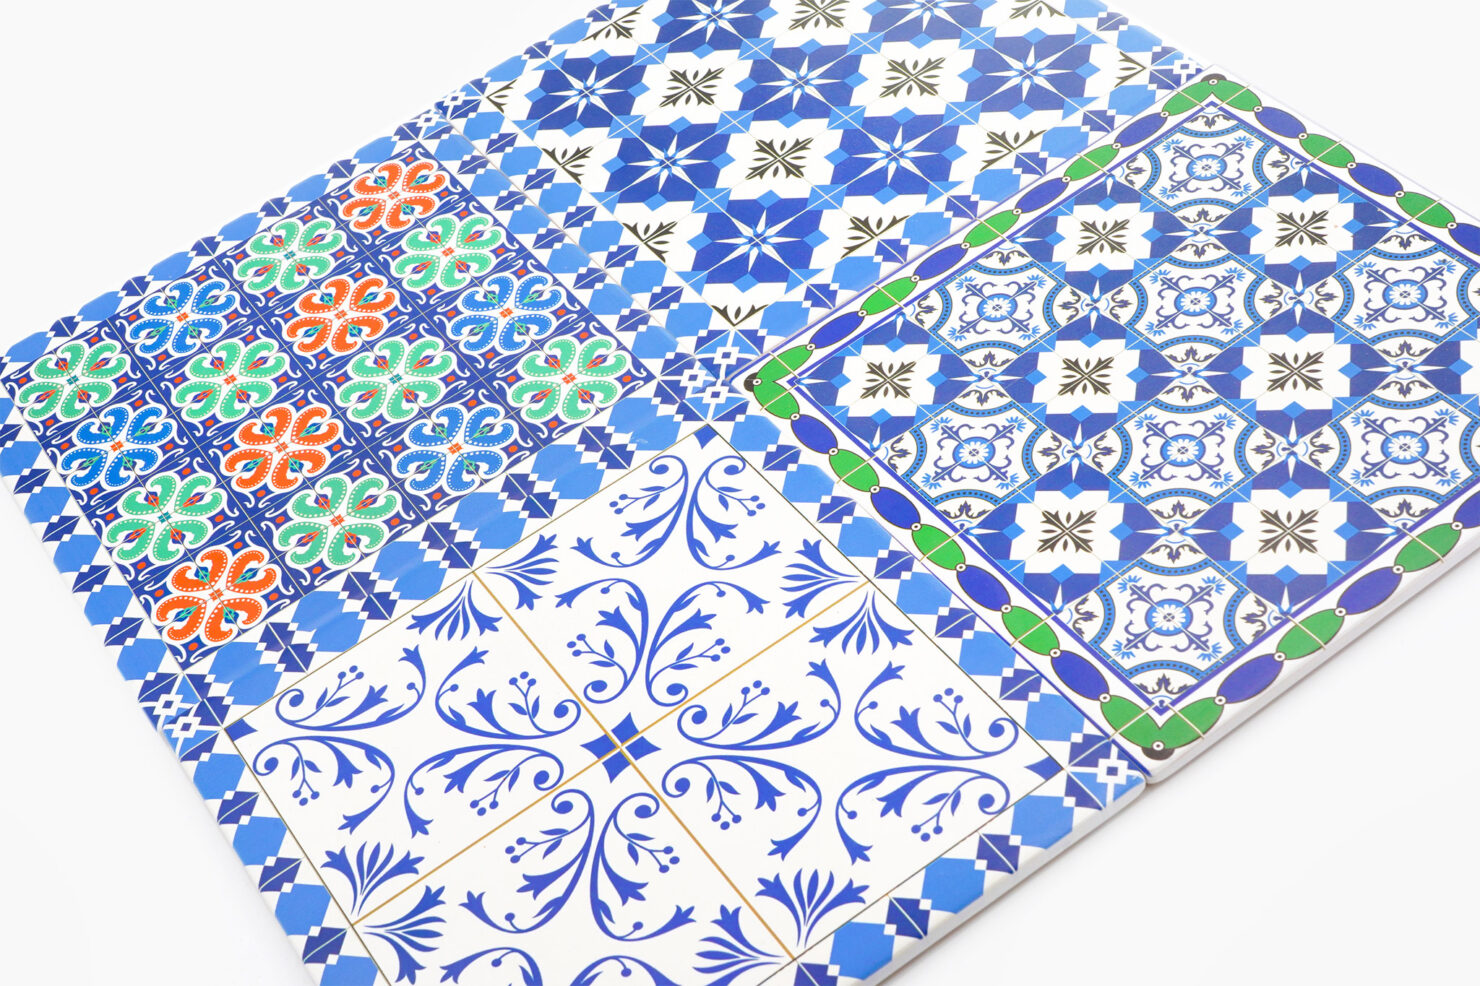 TRIVET, SQUARE, CERAMIC, MOROCCAN DESIGN - BY ROOM